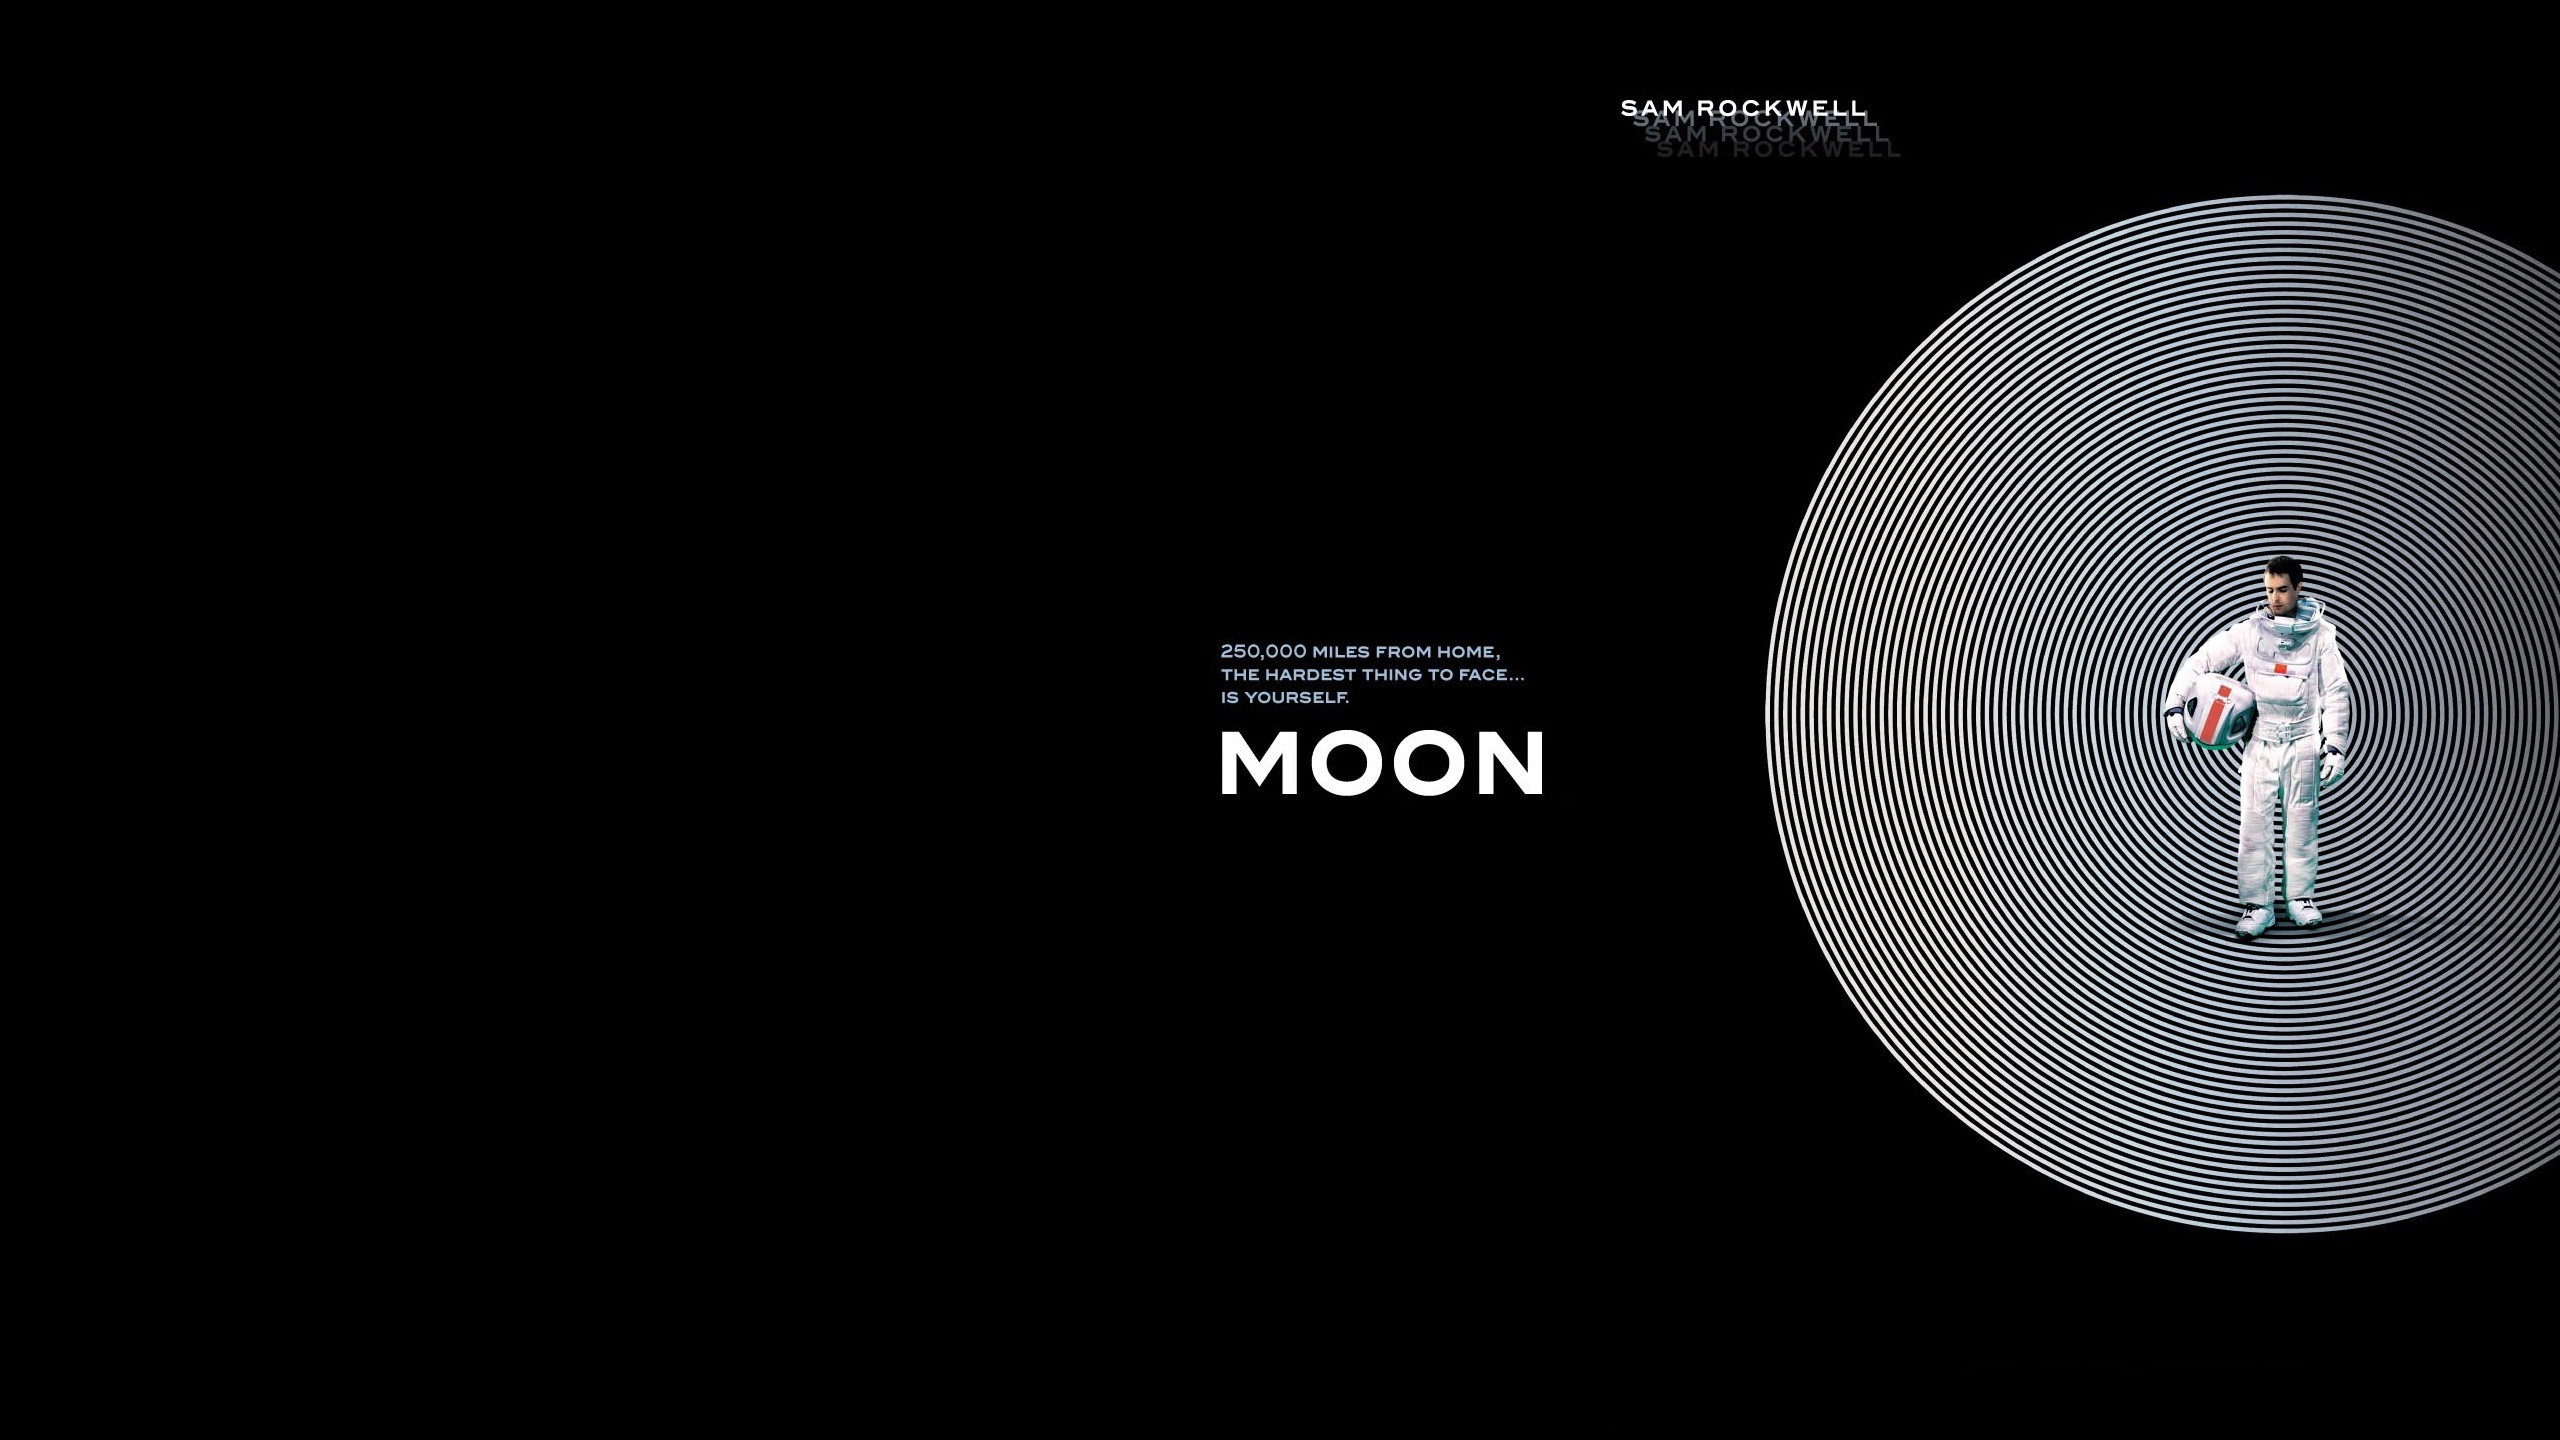 moon-sam-rockwell-movies-2560x1440-wallpaper